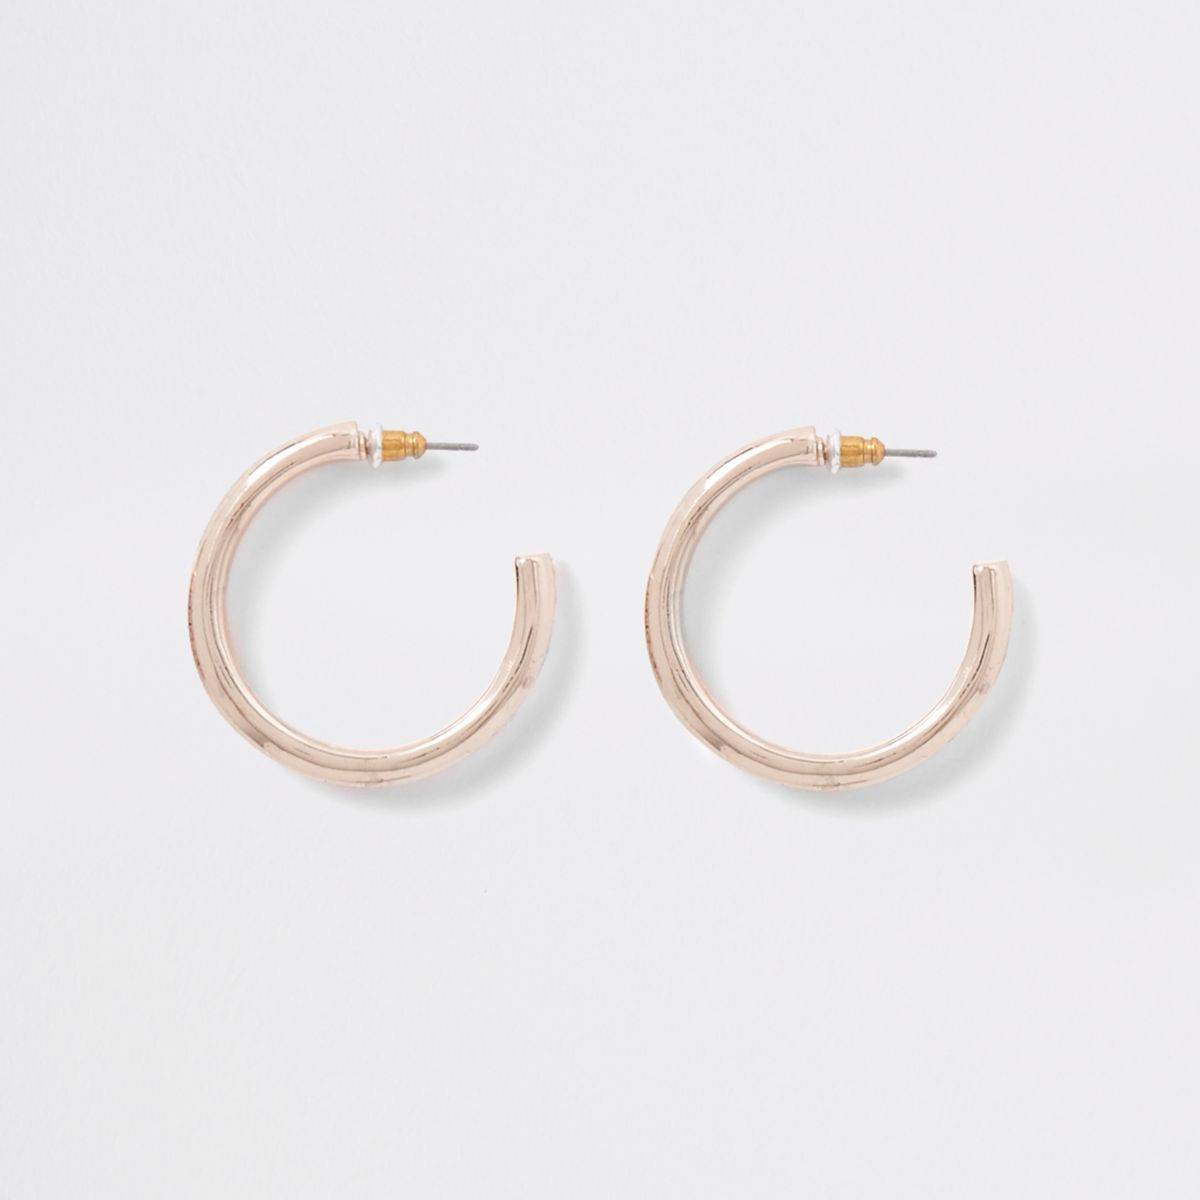 Rose gold rhinestone pave hoop earrings